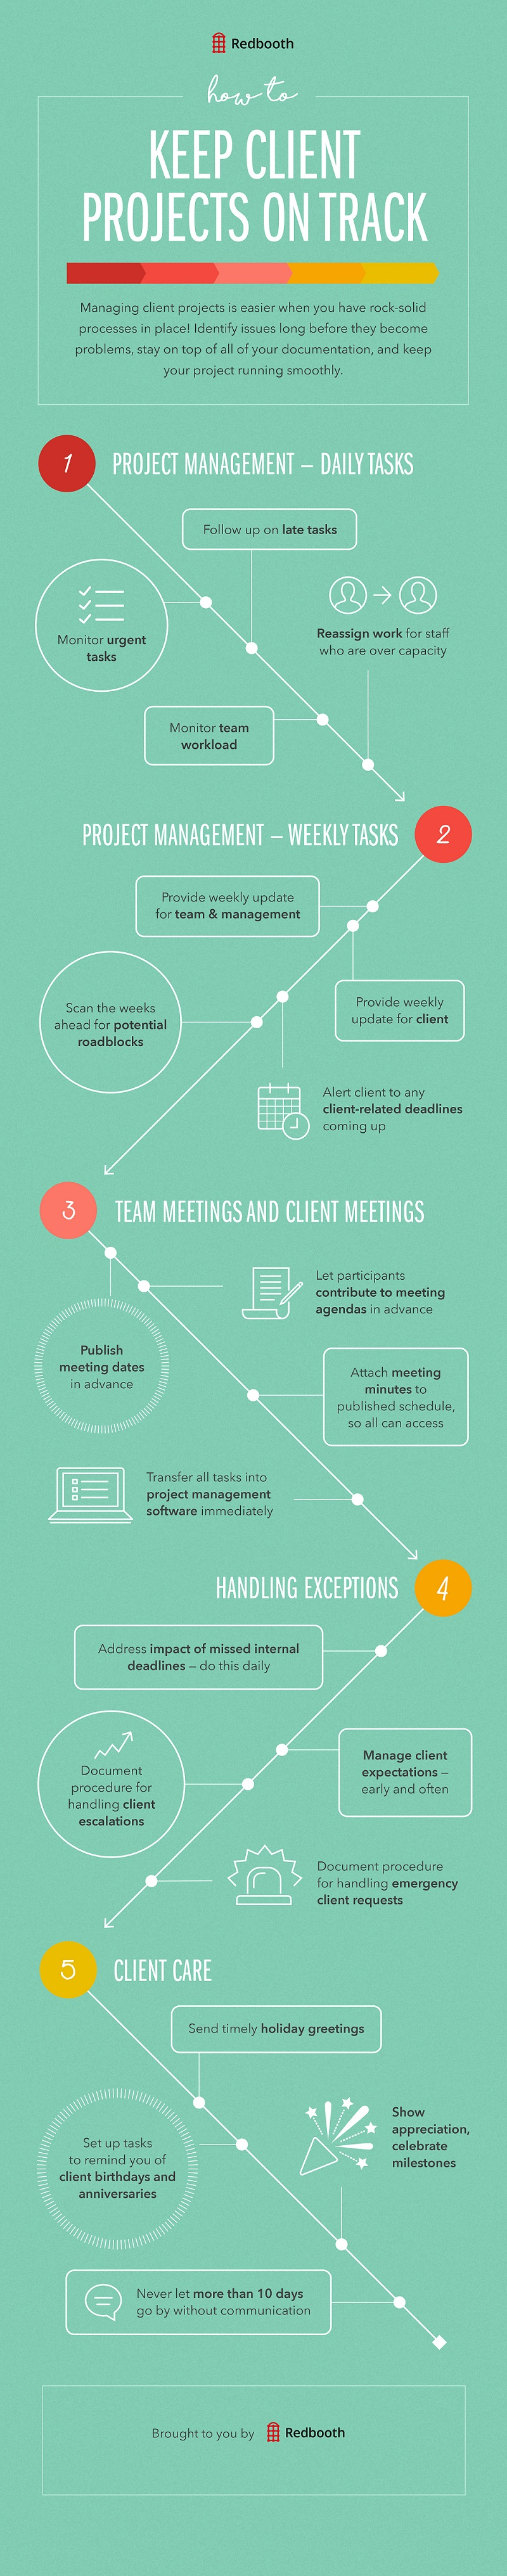 160521-how-to-keep-client-projects-on-track-infographic